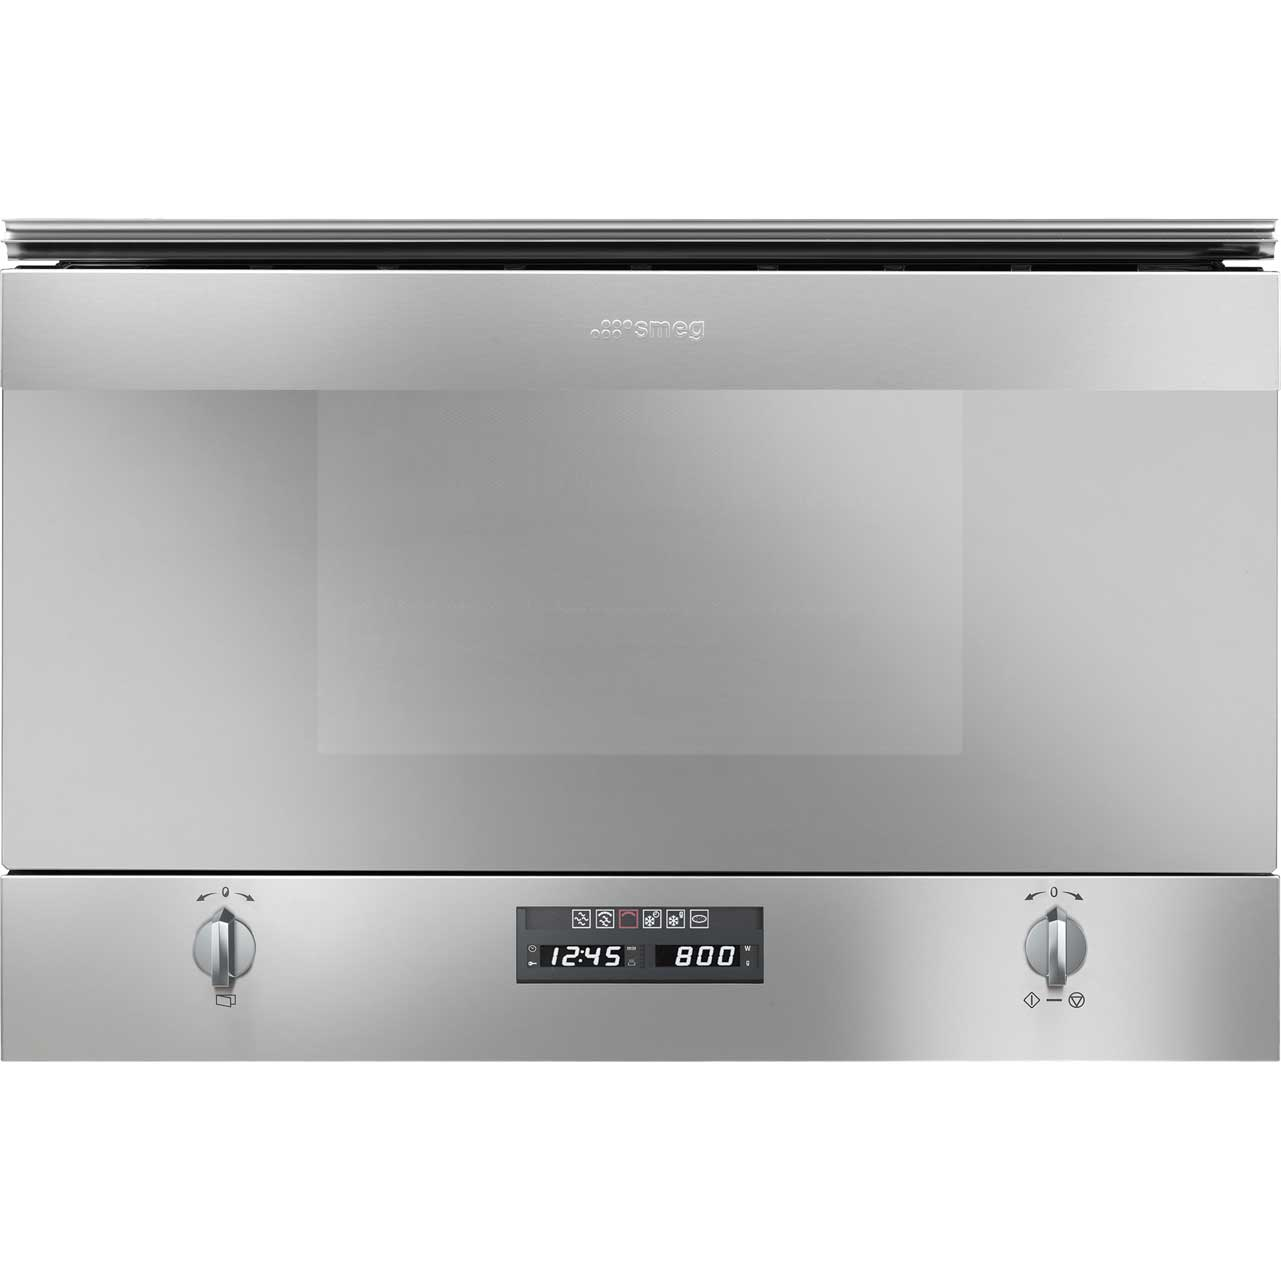 Smeg Cucina MP422X Integrated Microwave Oven in Stainless Steel